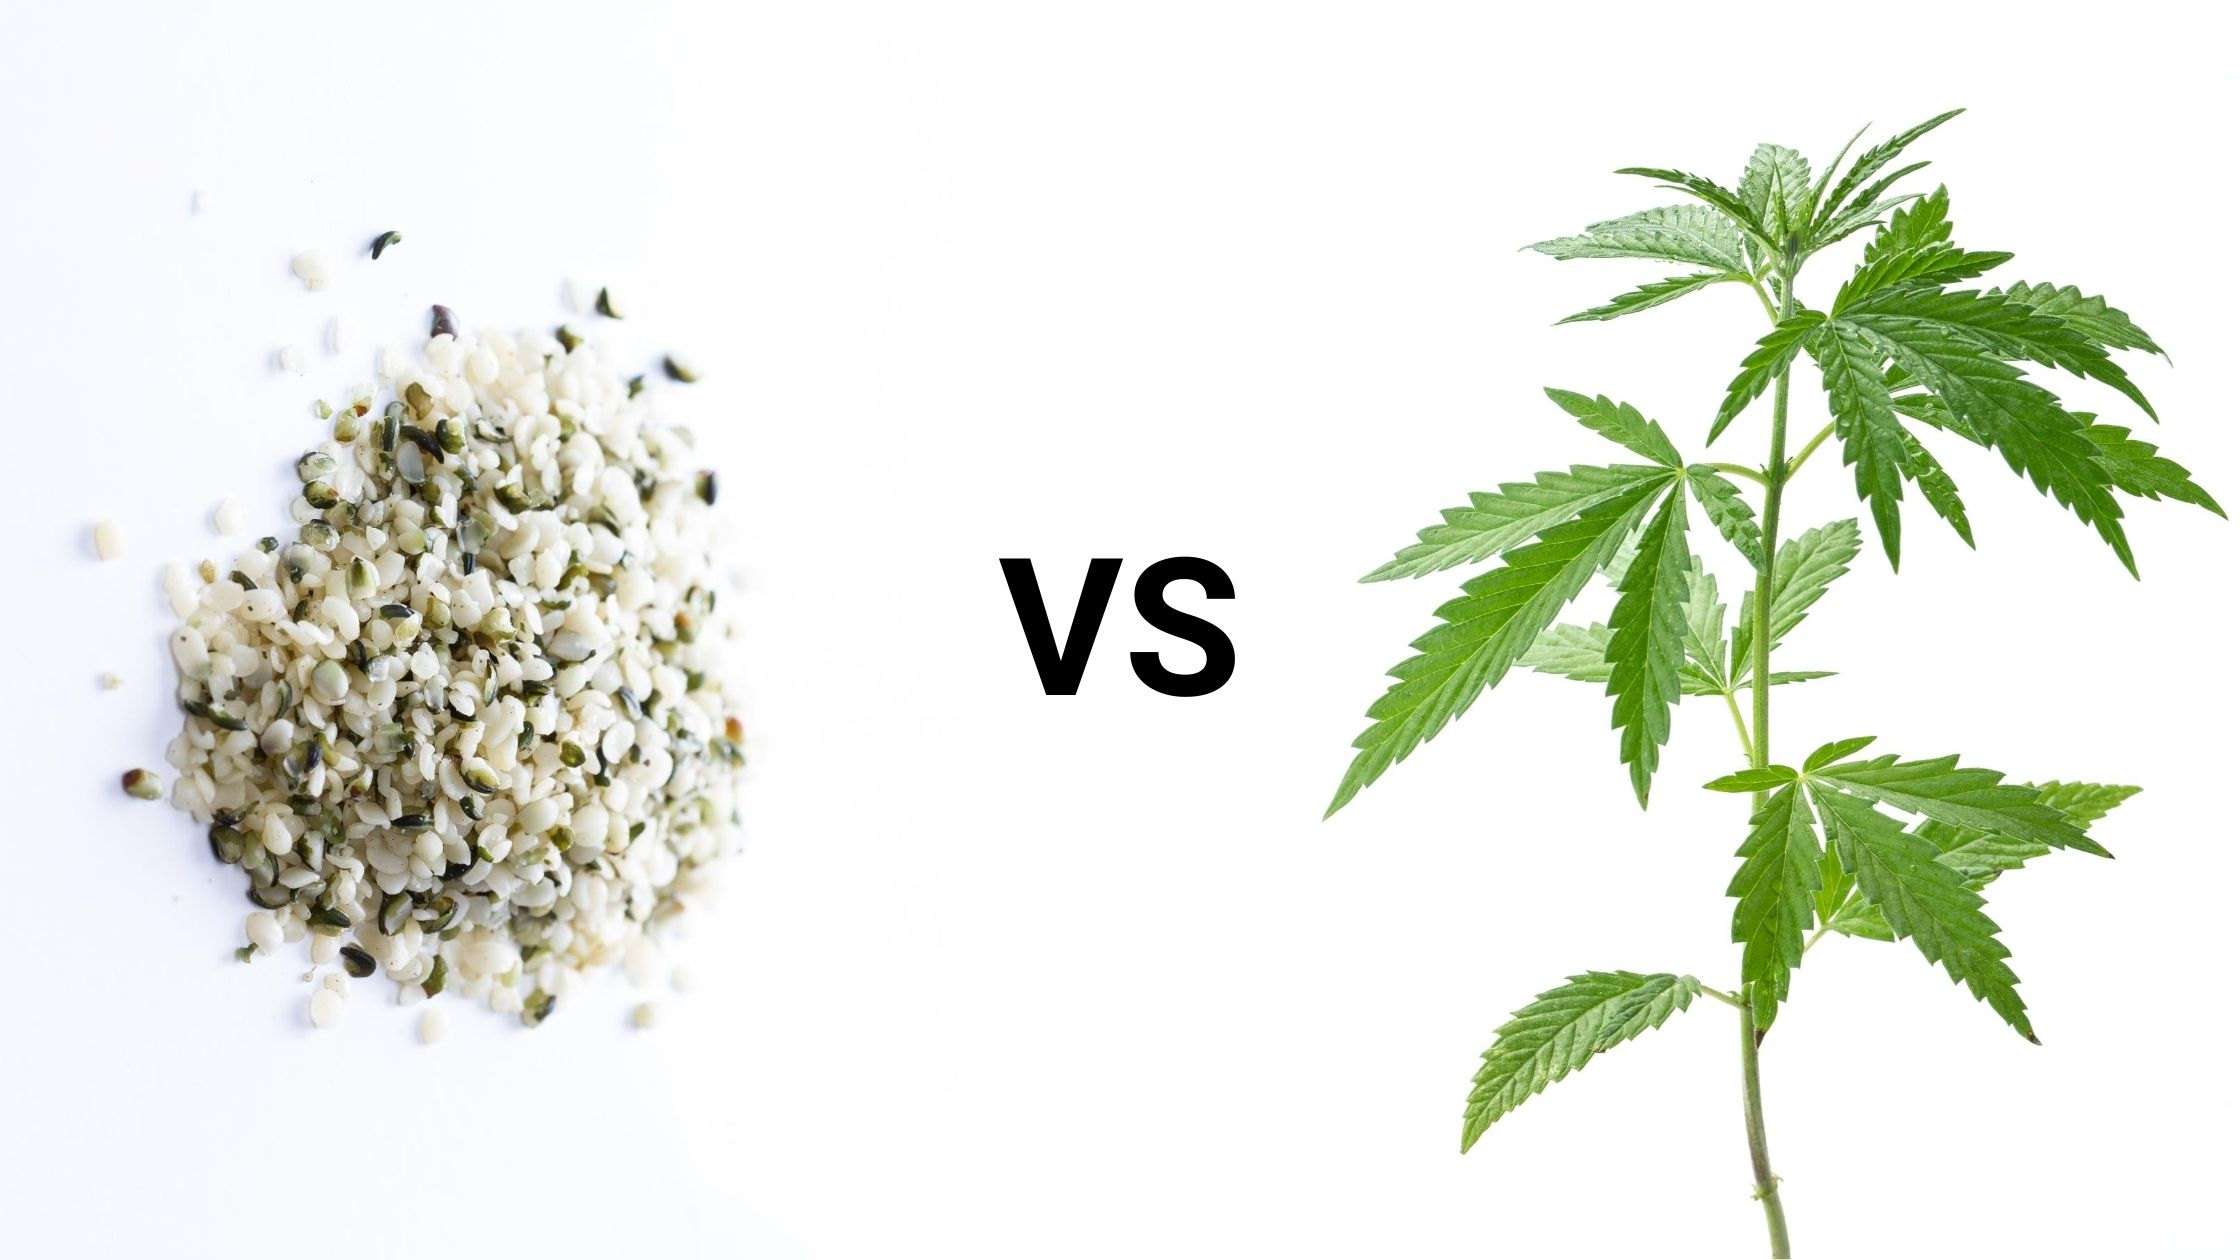 The difference between CBD oil and Hempseed Oil